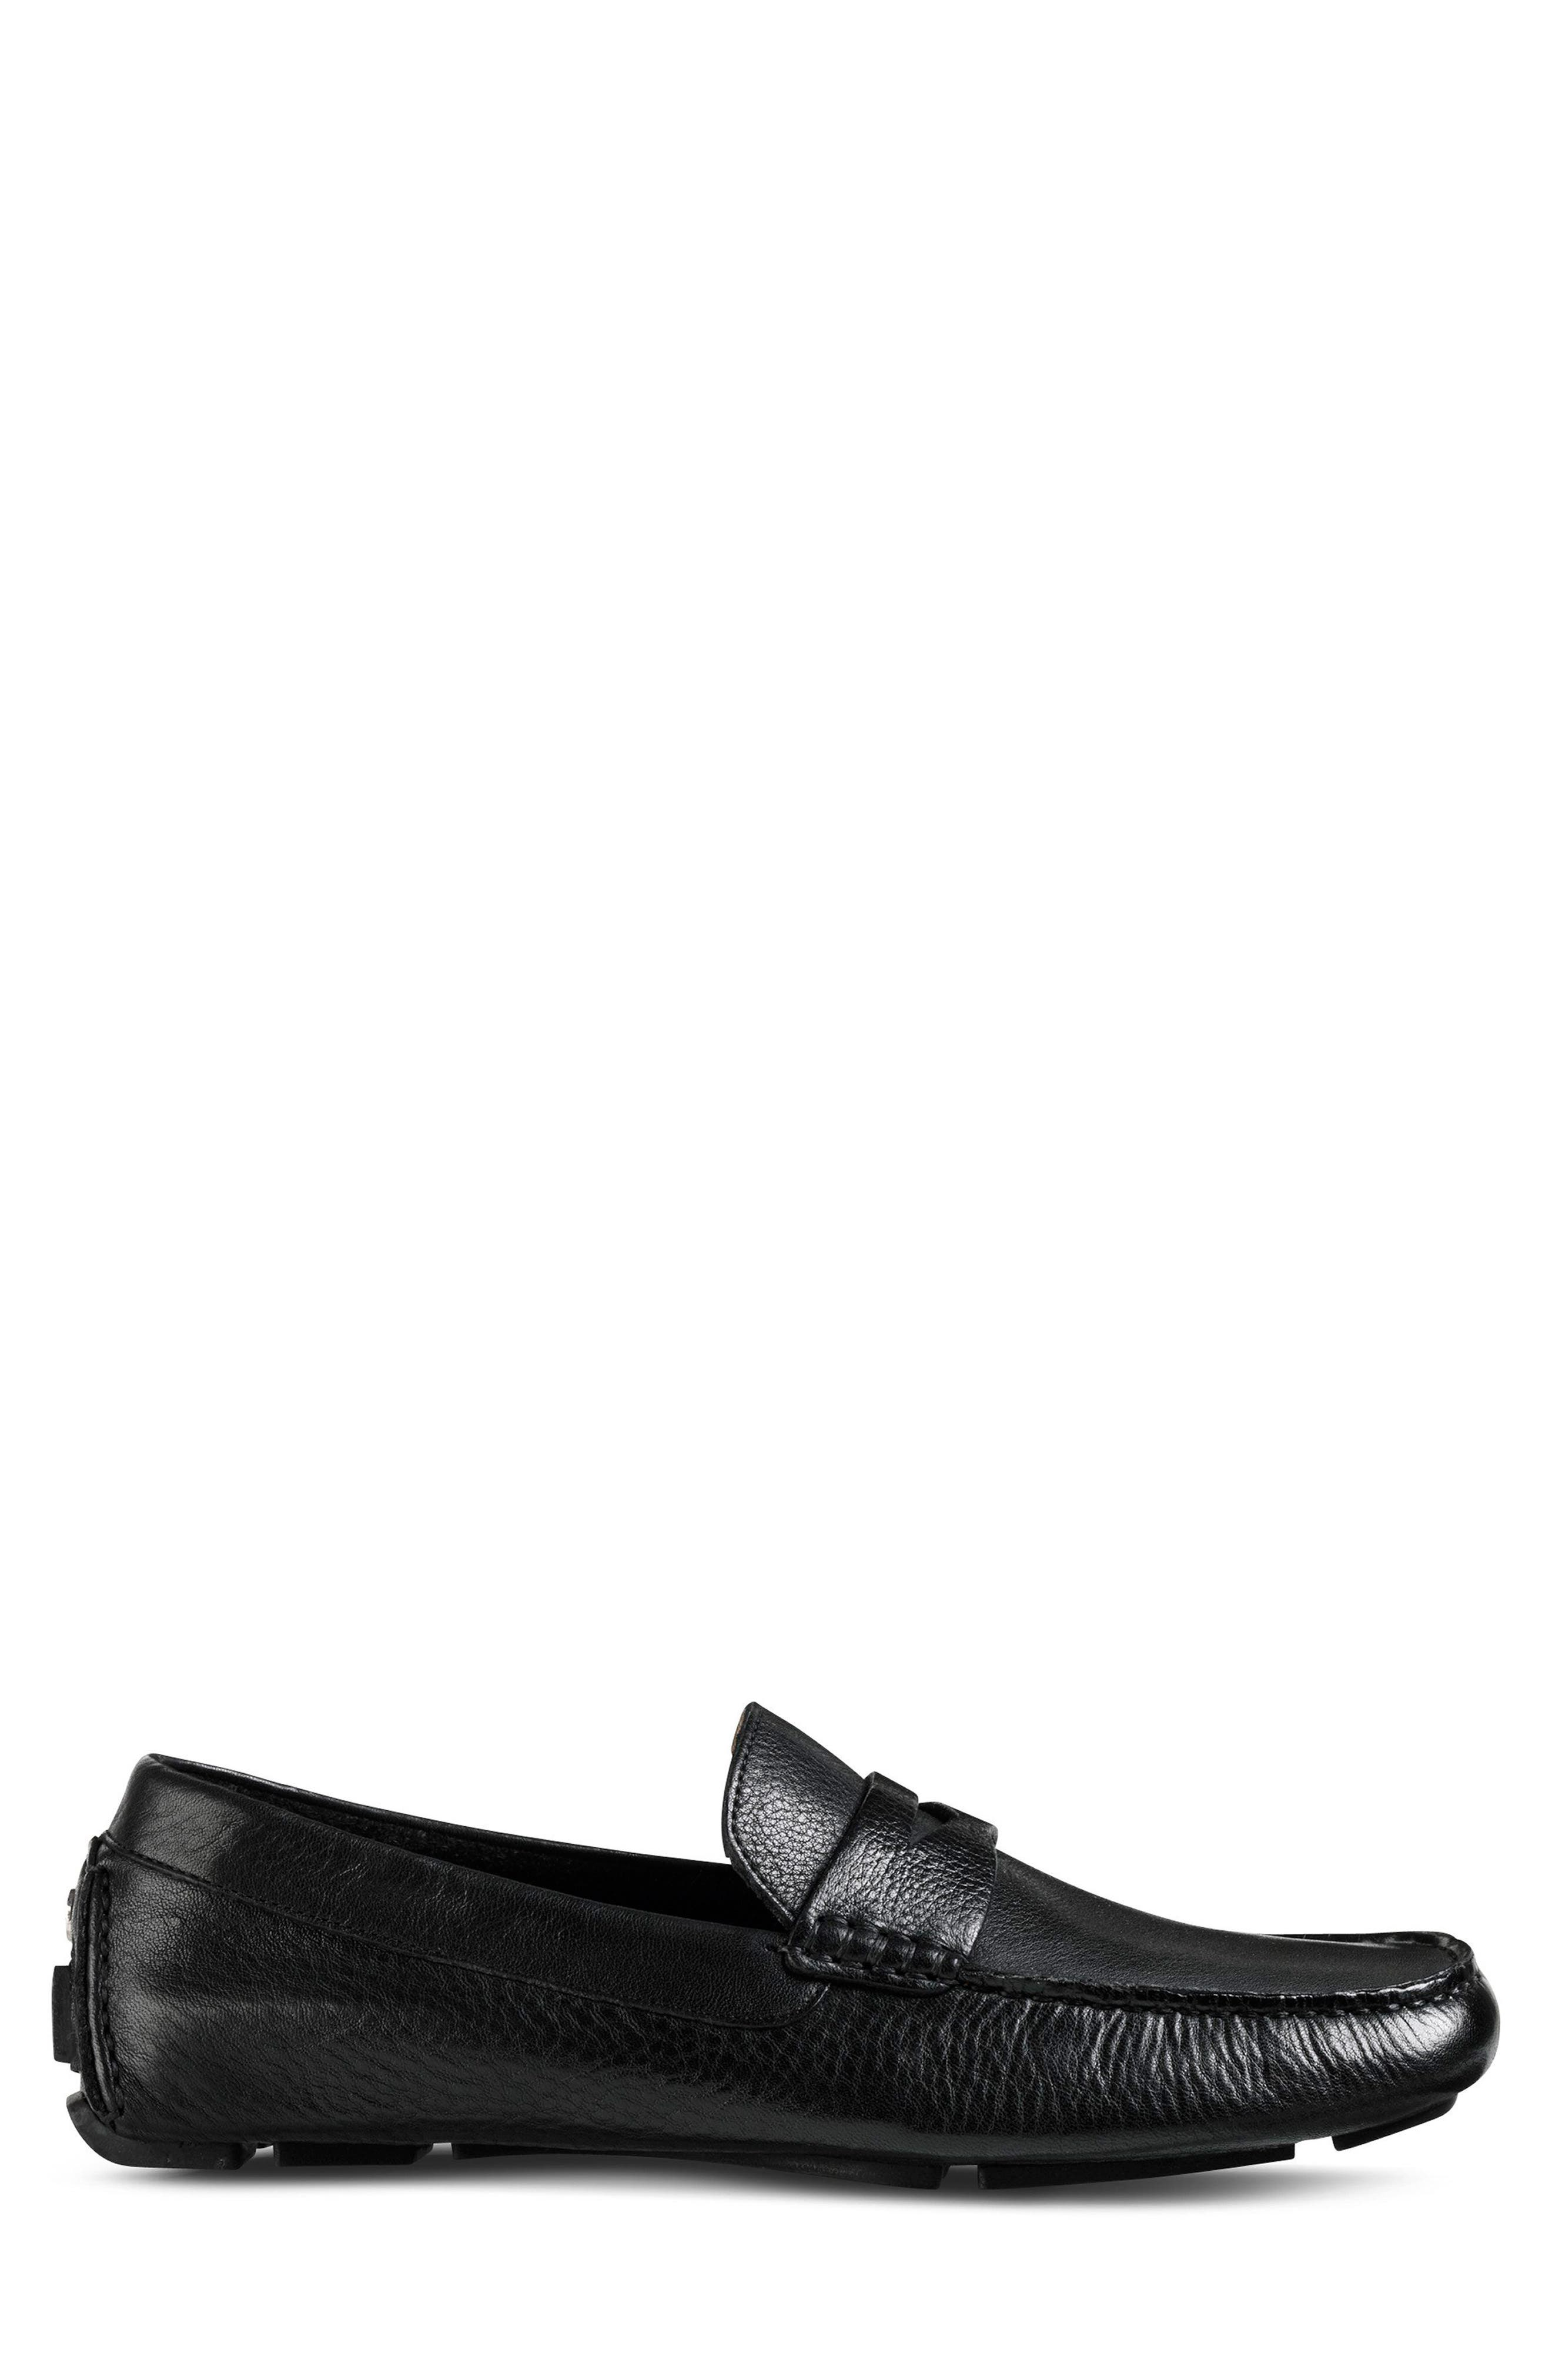 COLE HAAN, 'Howland' Penny Loafer, Alternate thumbnail 3, color, BLACK TUMBLED